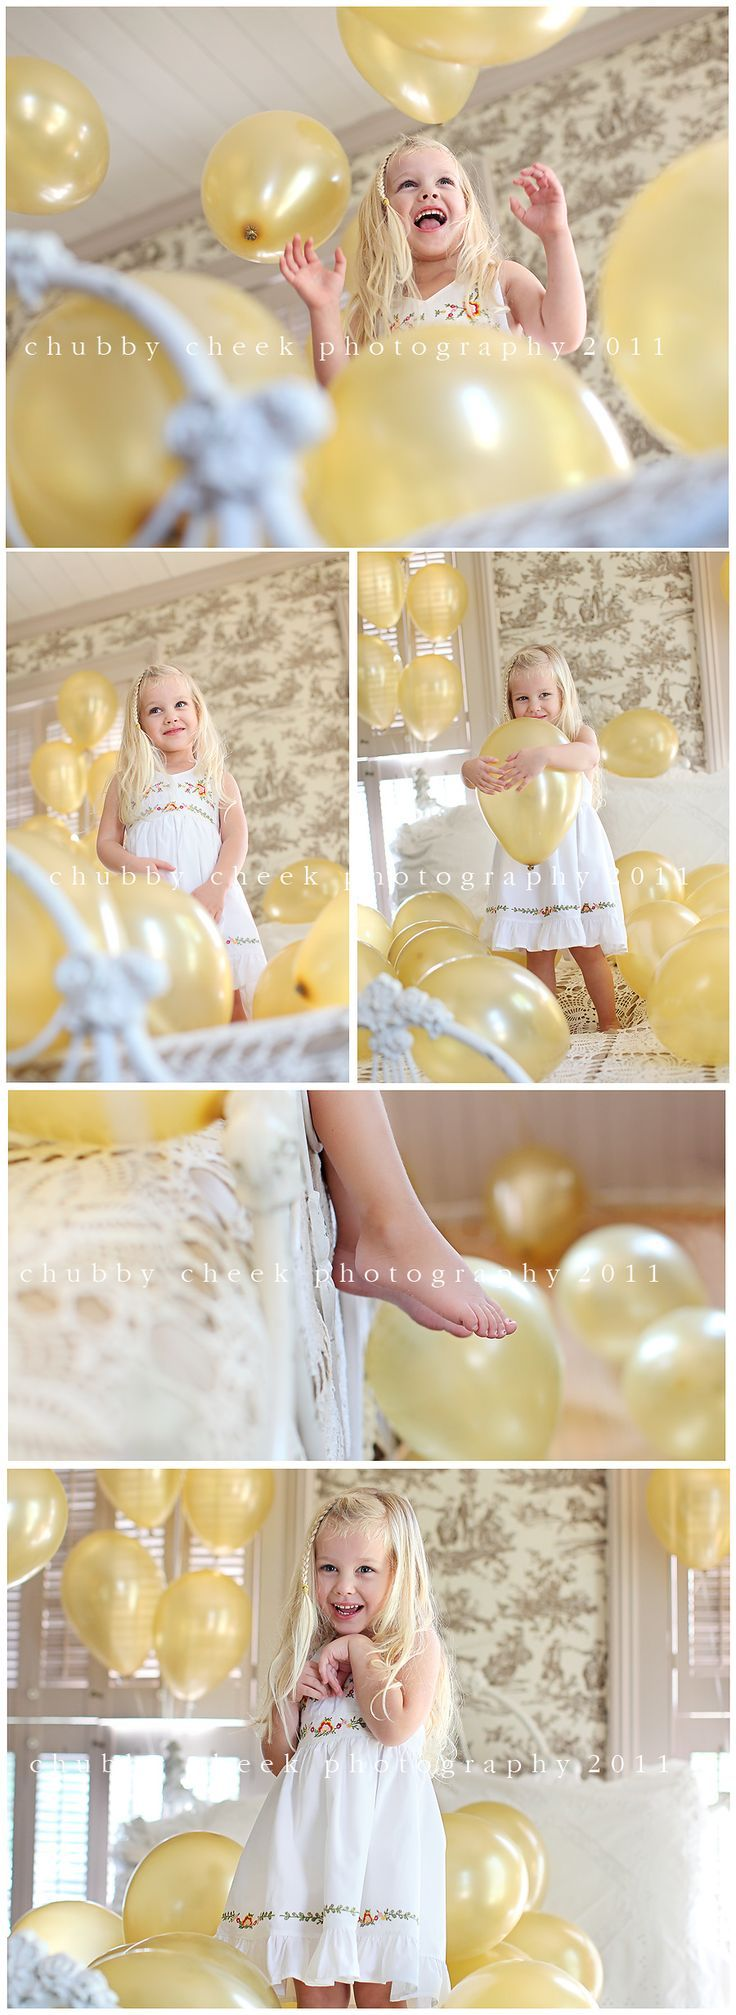 photo shoot with LOTS of balloons. Fun for kids! #What a great idea for a photography ✲#